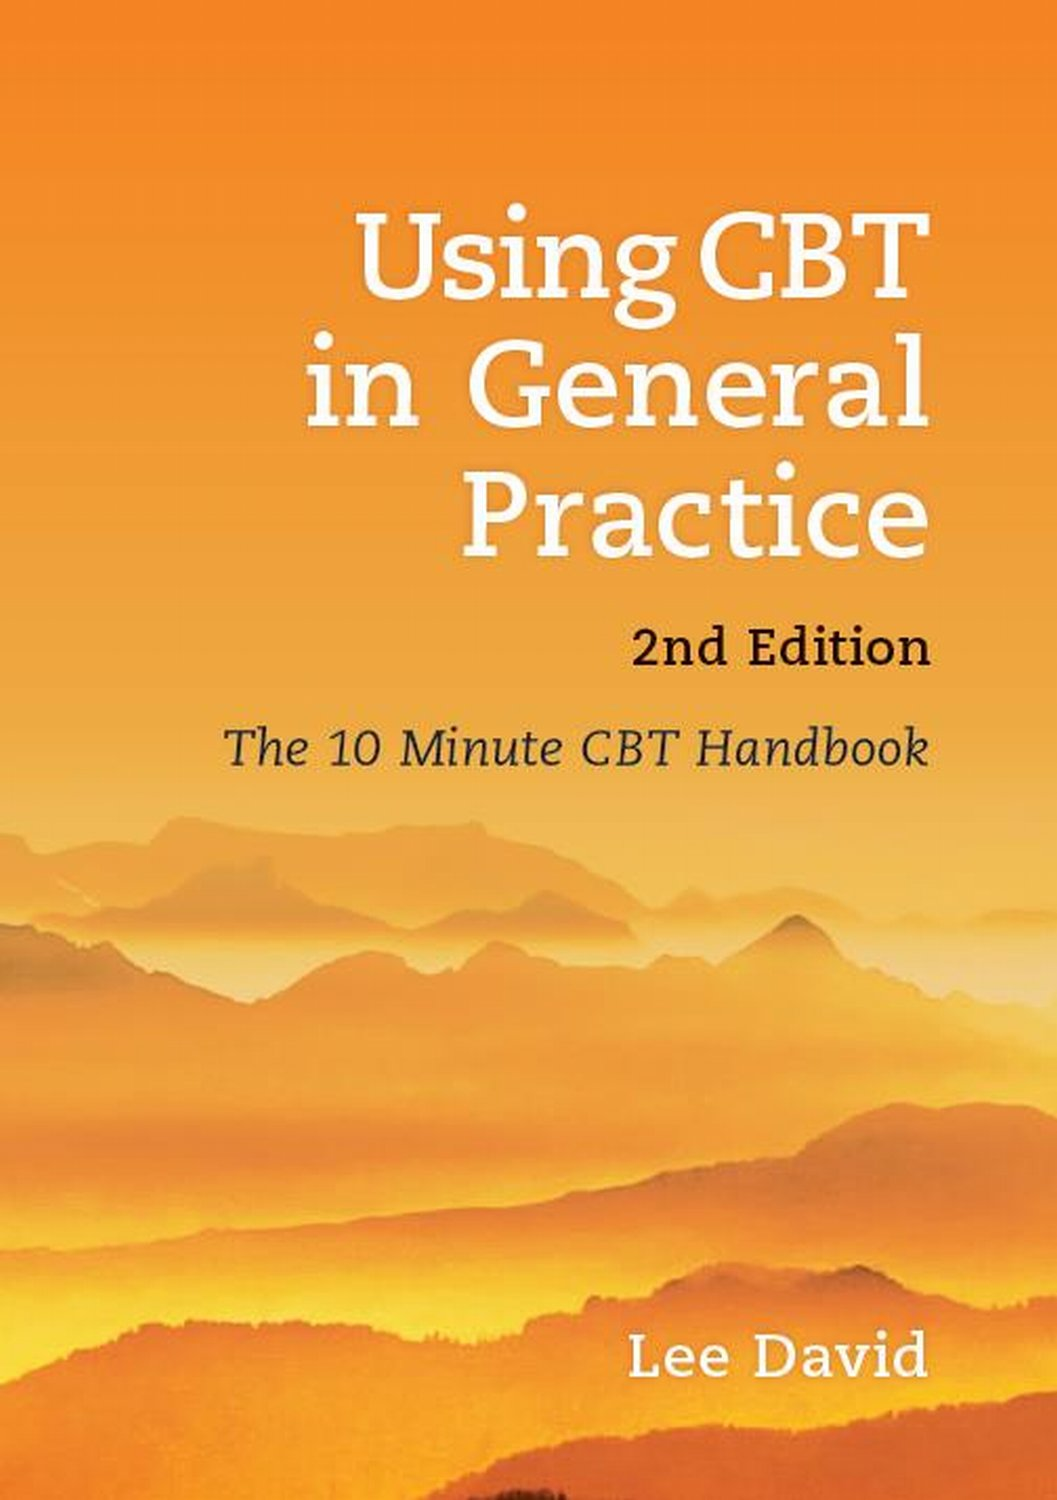 Using CBT in General Practice, second edition